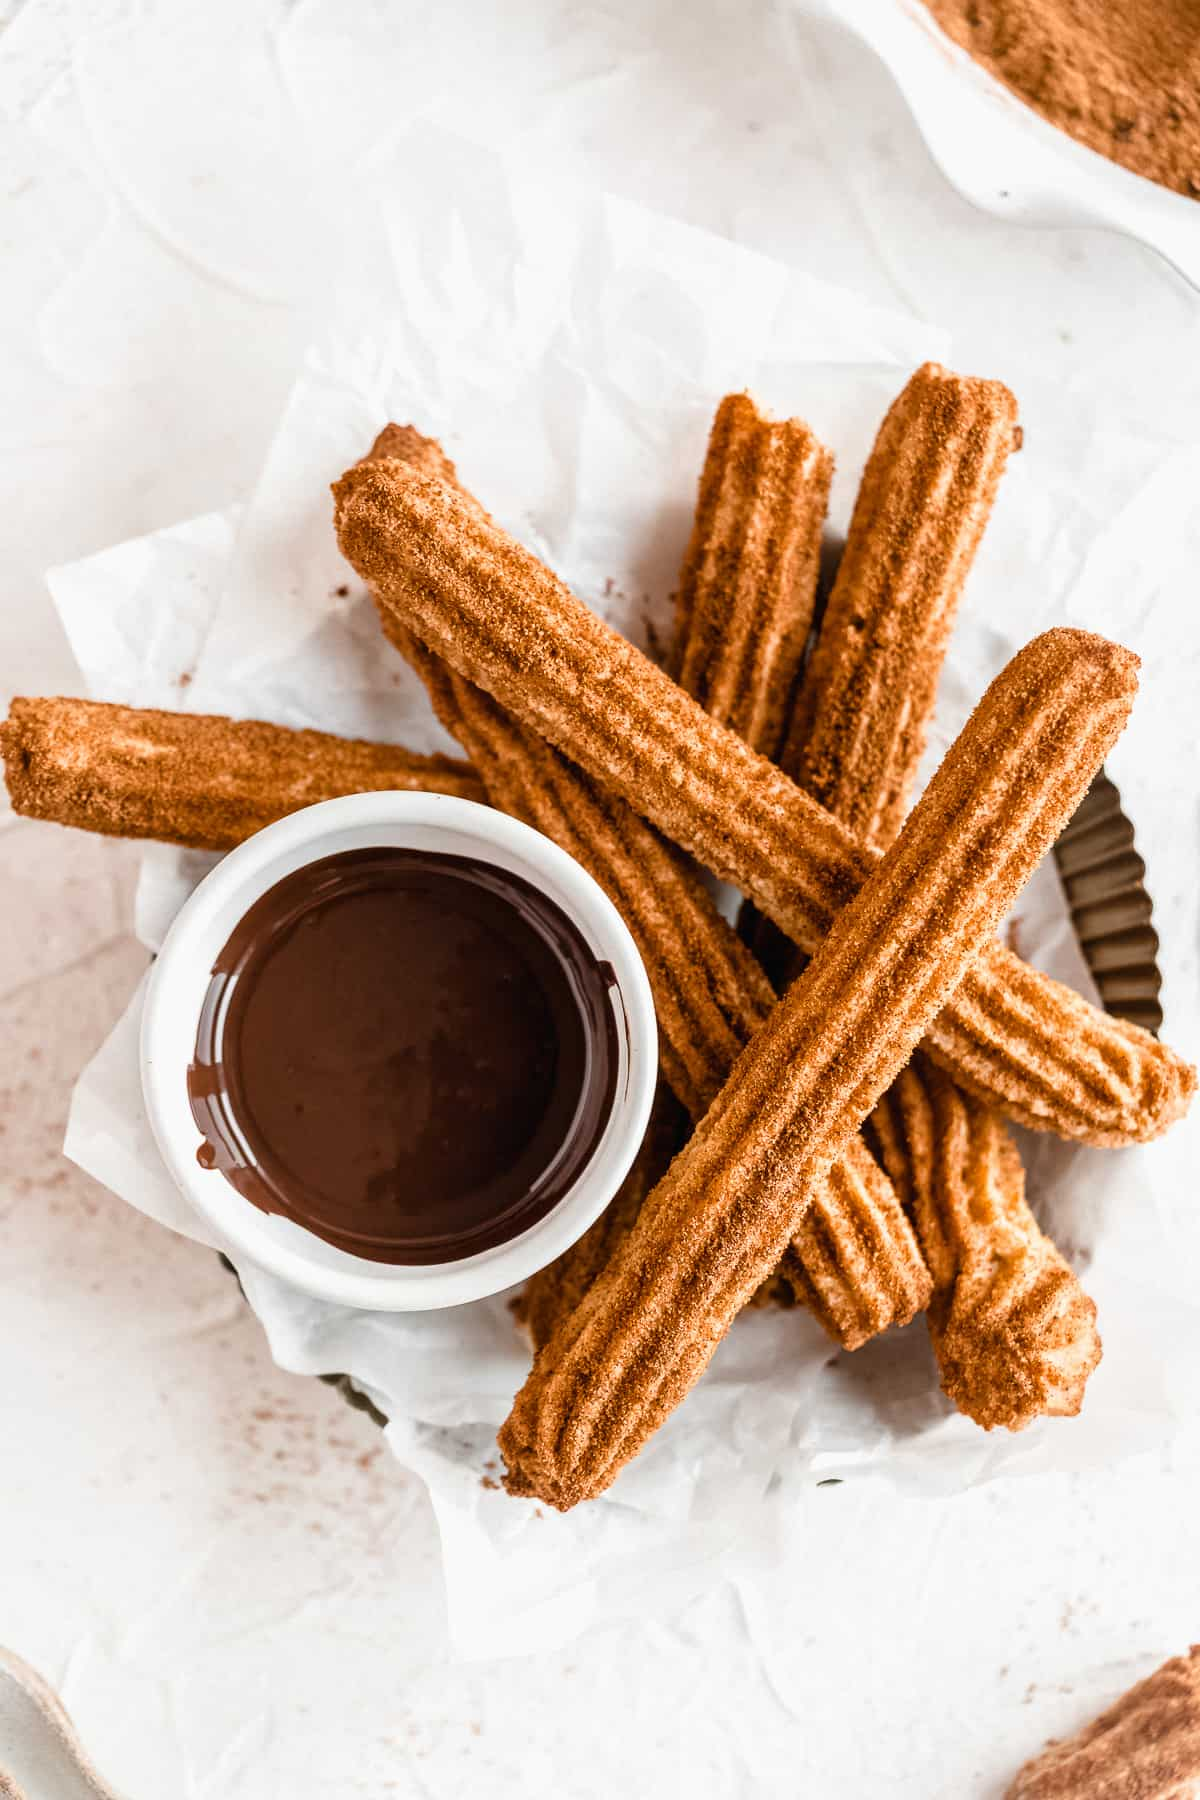 Basket of churros on a white surface with a bowl of melted chocolate.